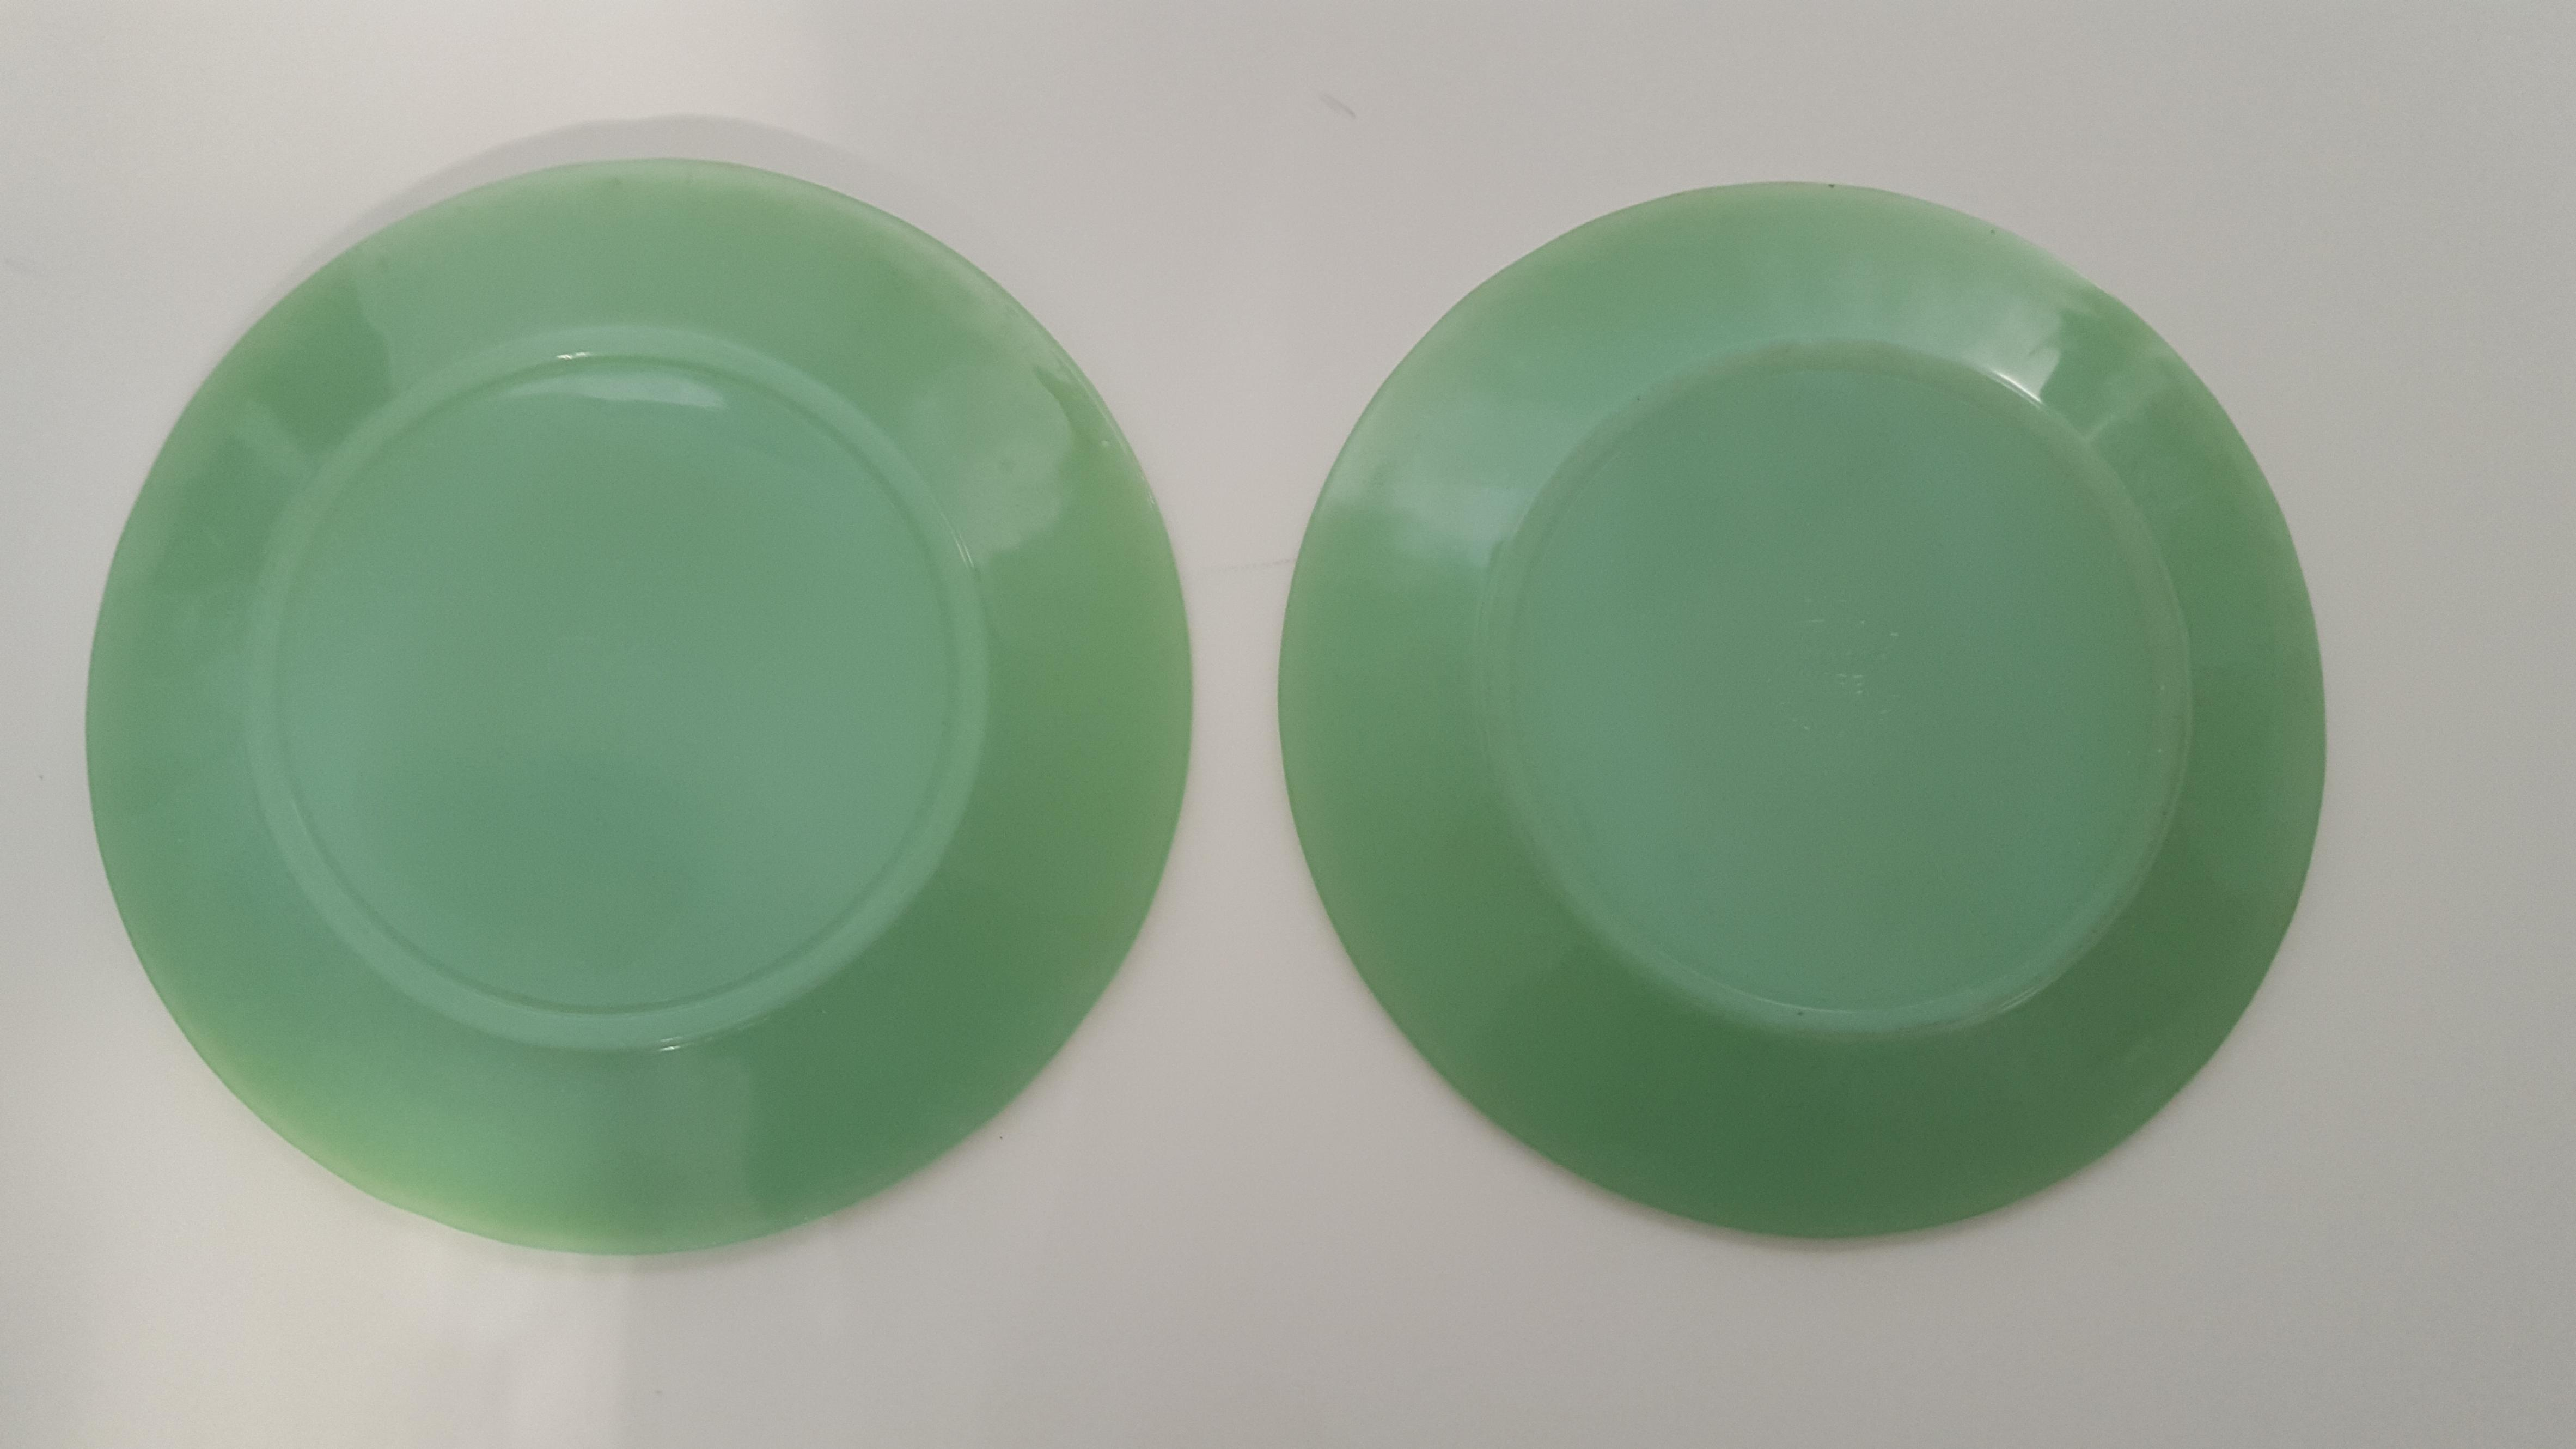 1960s Oven Fire King Jadeite Decorative Plates- A Set - Image 7 of 11  sc 1 st  Chairish & 1960s Oven Fire King Jadeite Decorative Plates- A Set | Chairish